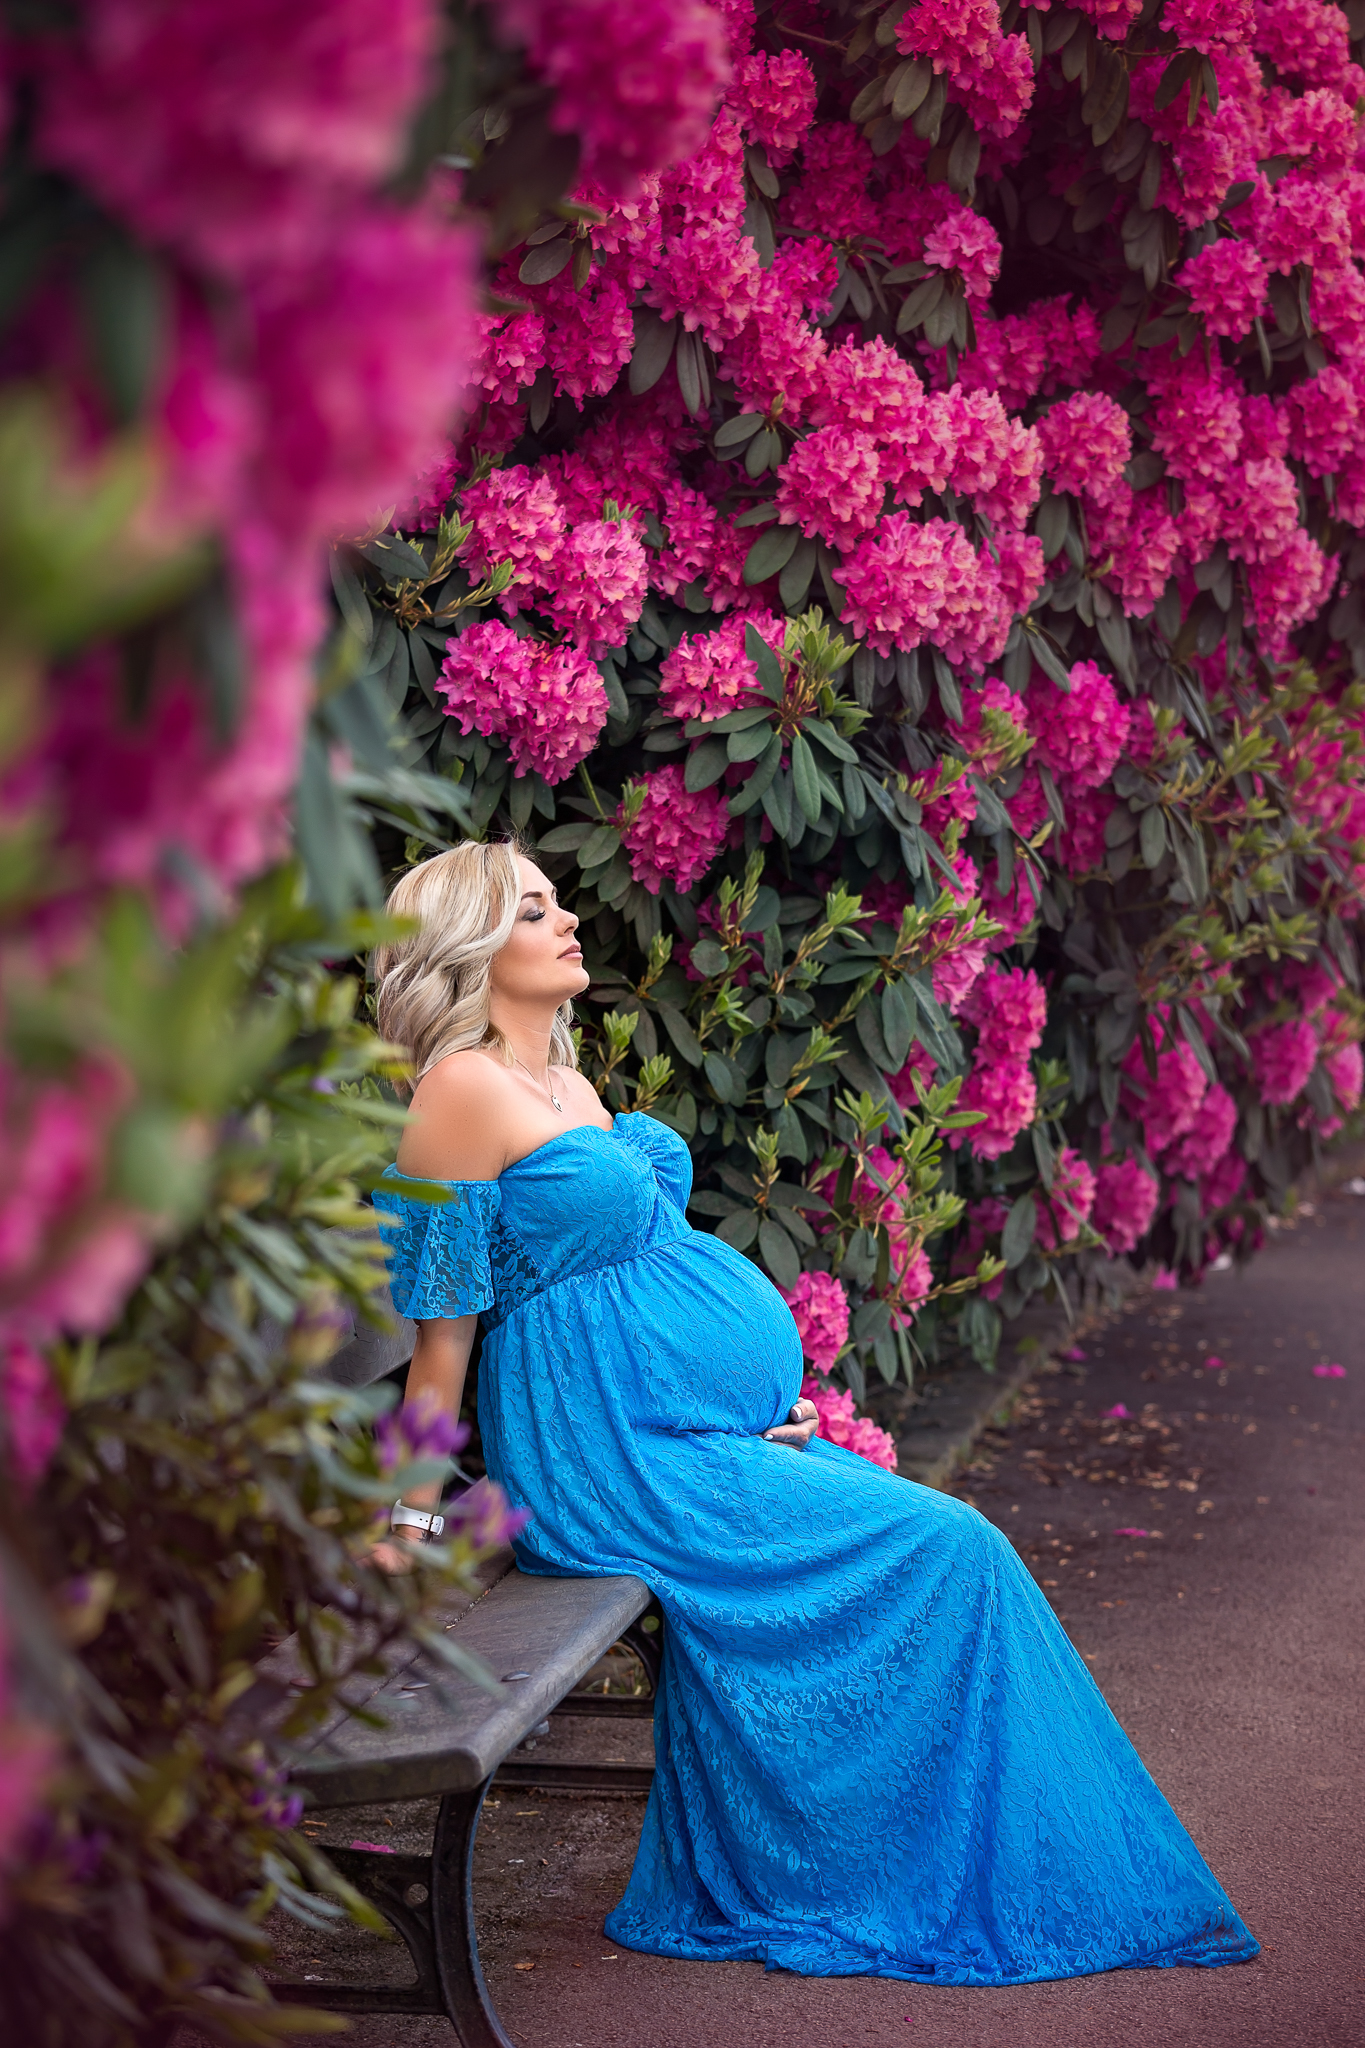 Maternity photography Leeds, York, Harrogate, Bradford: pregnant woman resting on a bench in a spring garden. spring maternity session in leeds, yorkshire